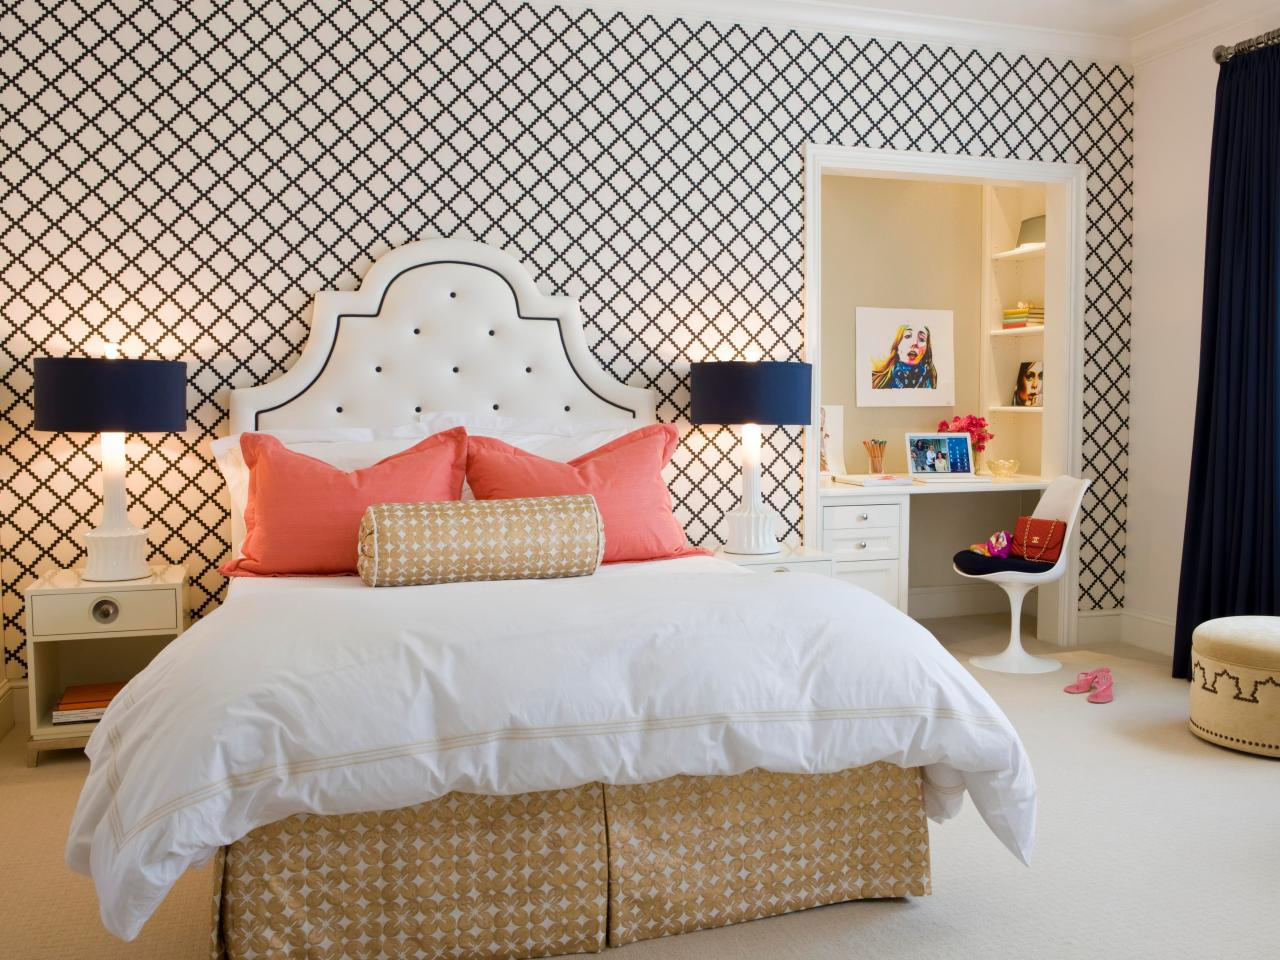 Sassy and sophisticated teen and tween bedroom ideas - Teenage girl bedroom decorations ...